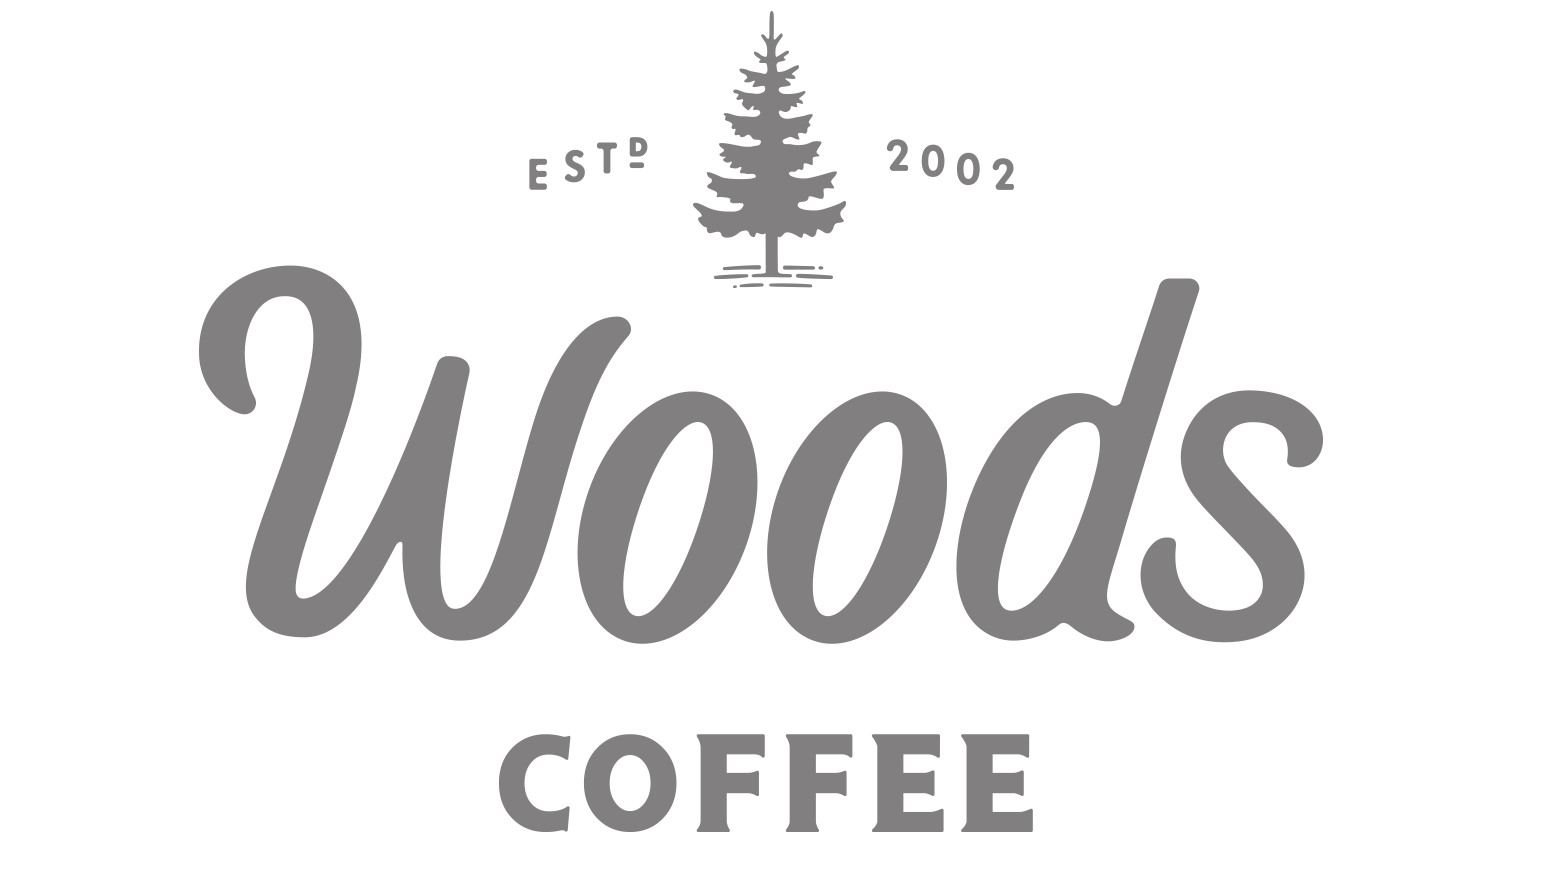 woods-coffee-logo-edit.png